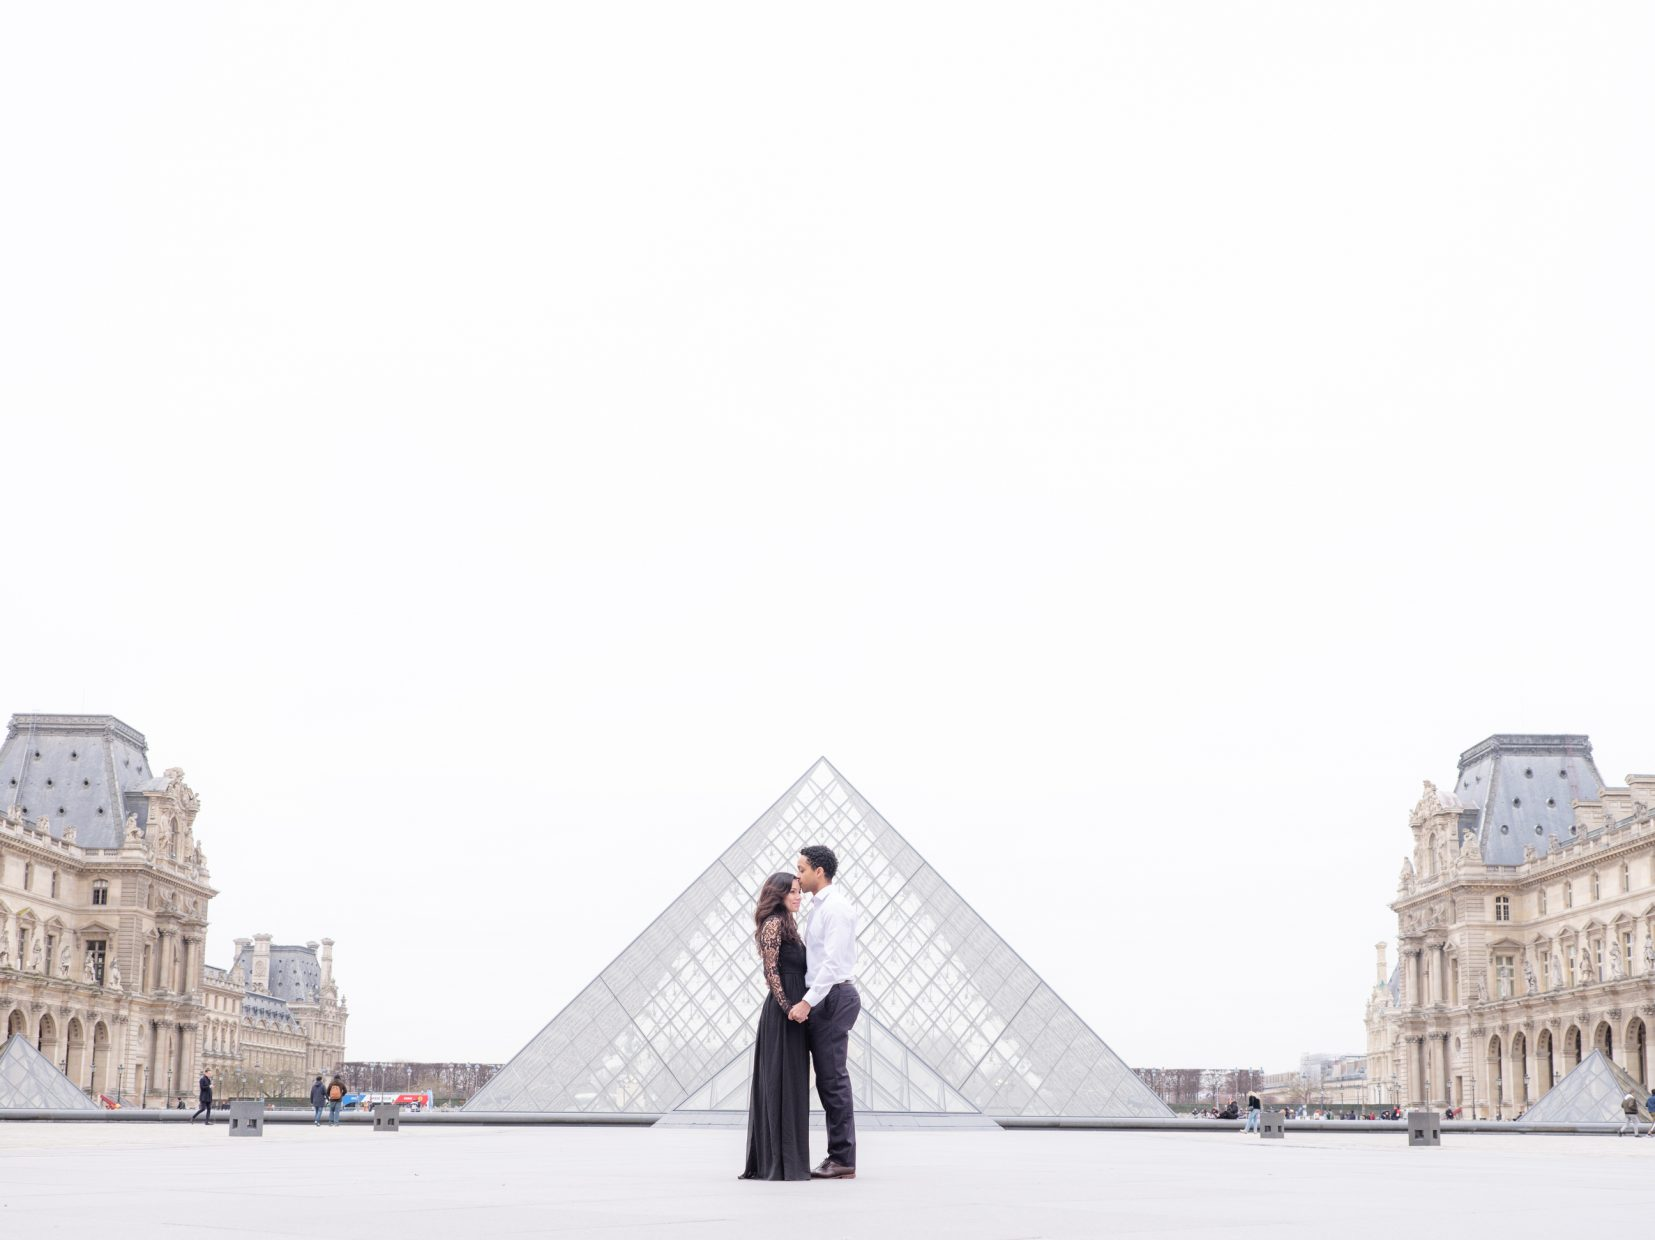 posing in the center of a square in paris